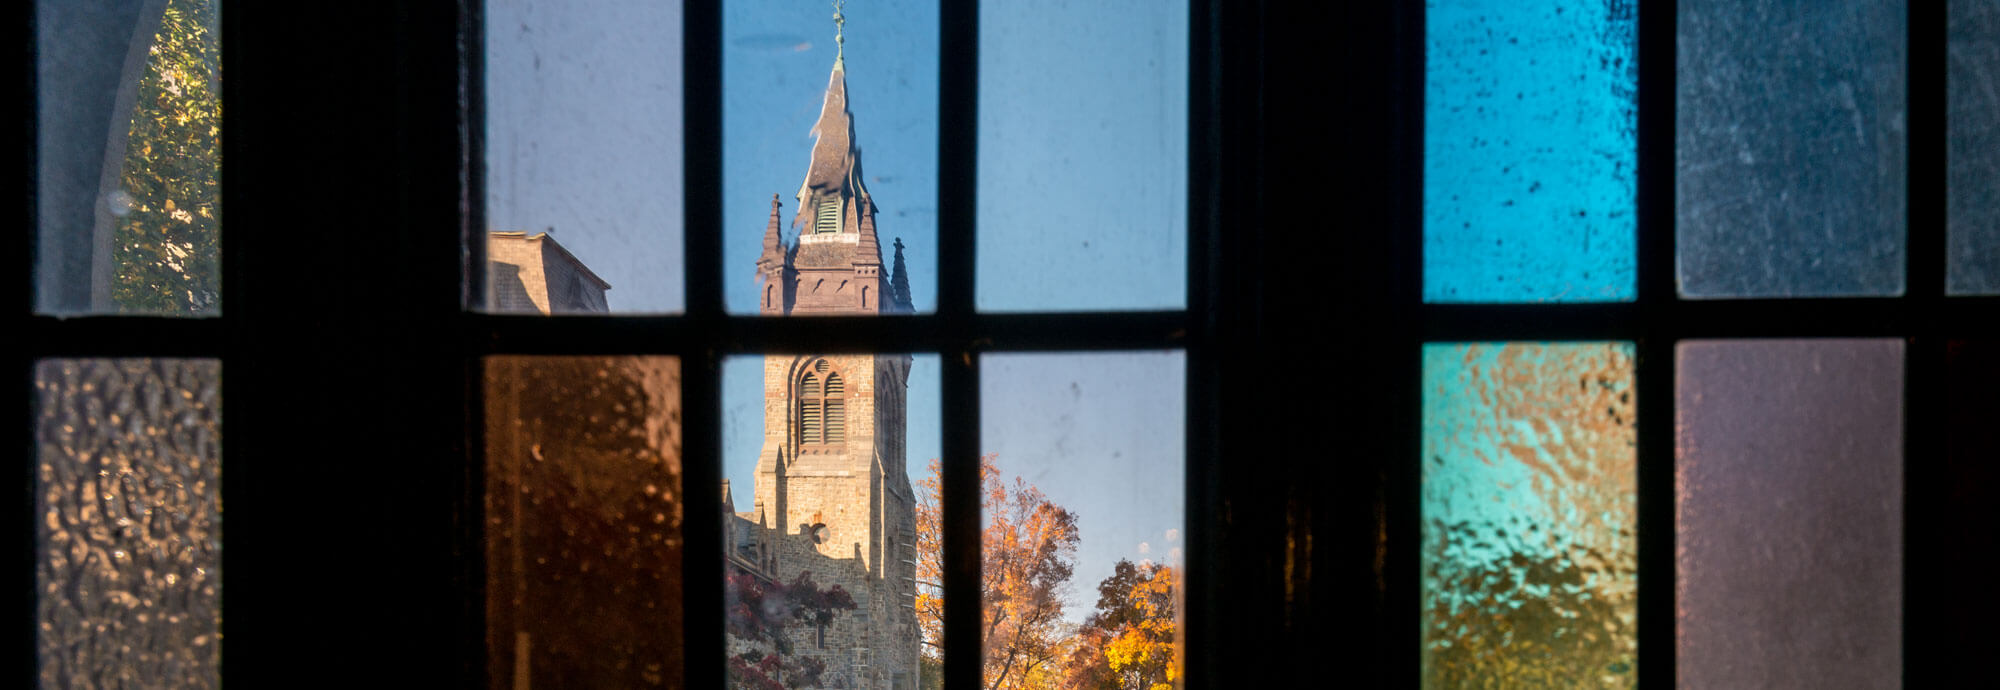 Lehigh campus seen through stained glass